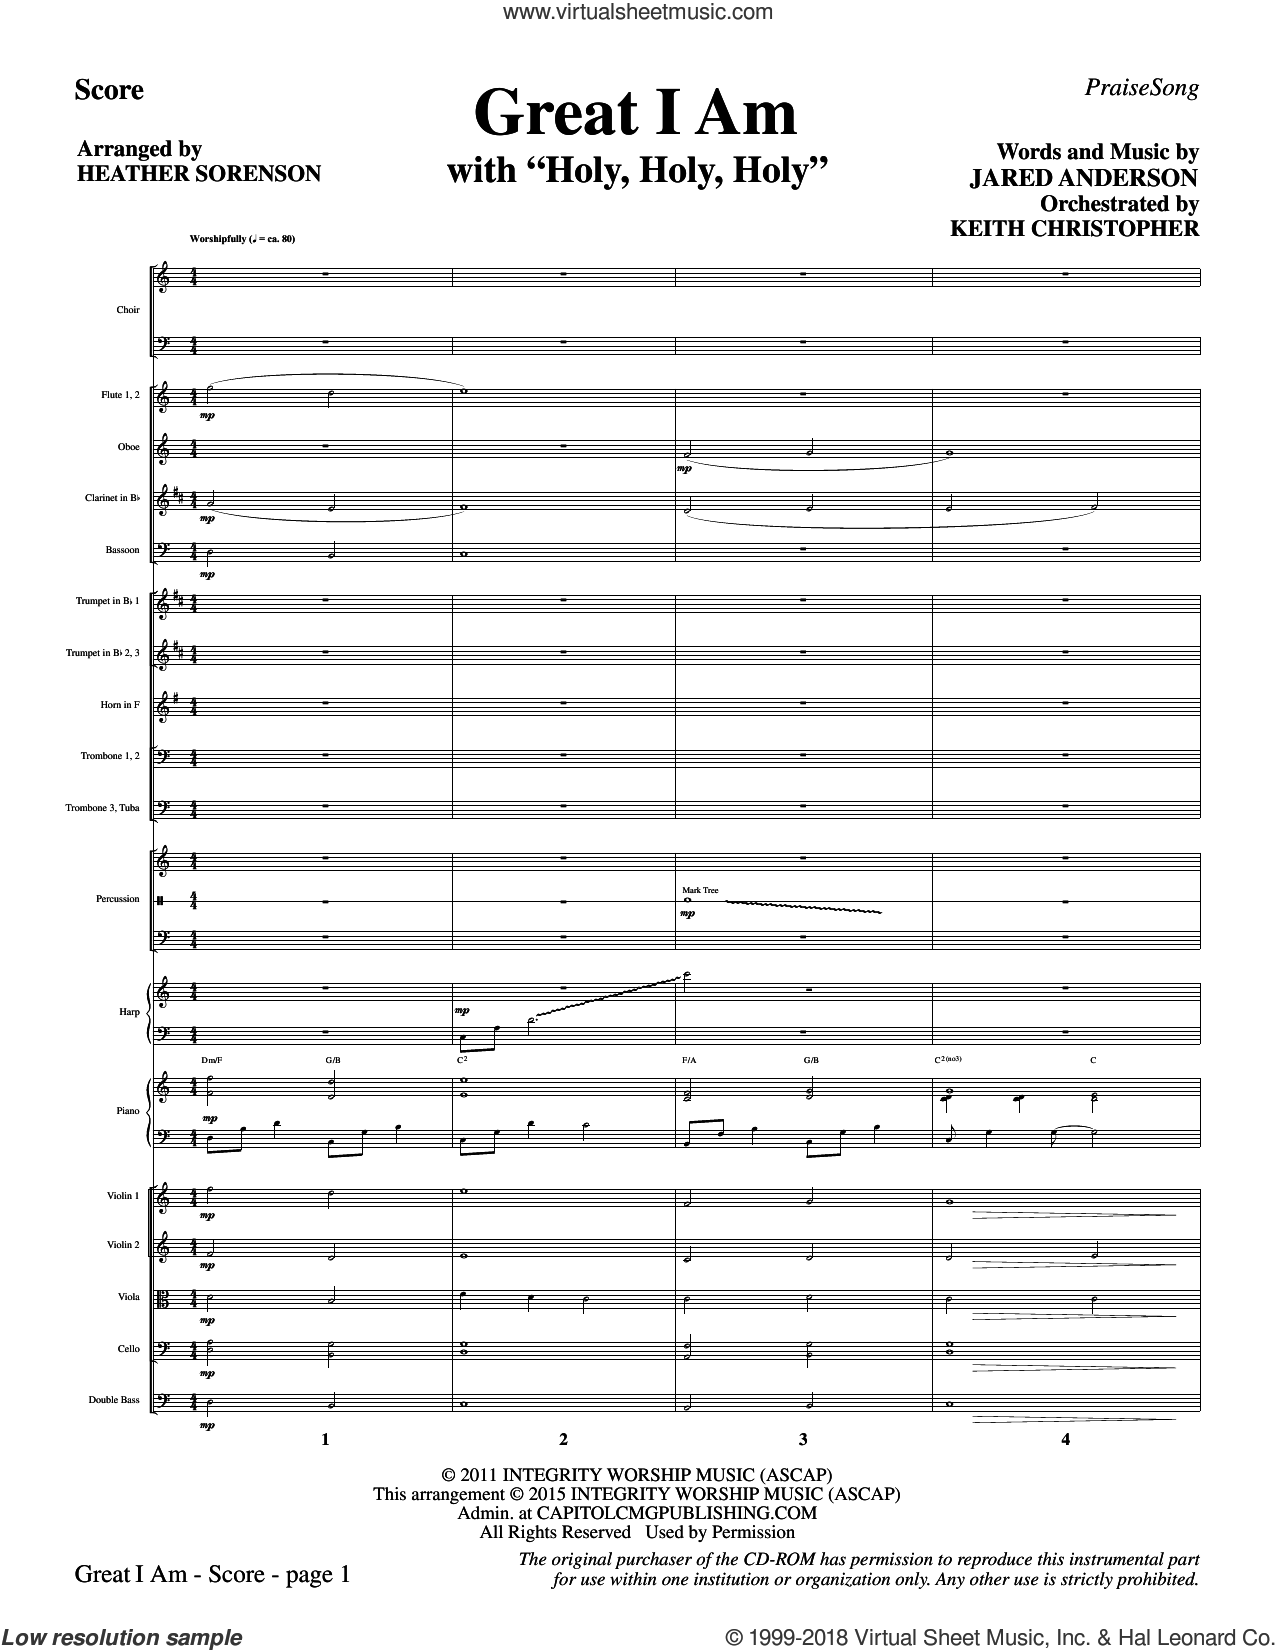 Great I Am (COMPLETE) sheet music for orchestra/band by Heather Sorenson and Jared Anderson, intermediate skill level